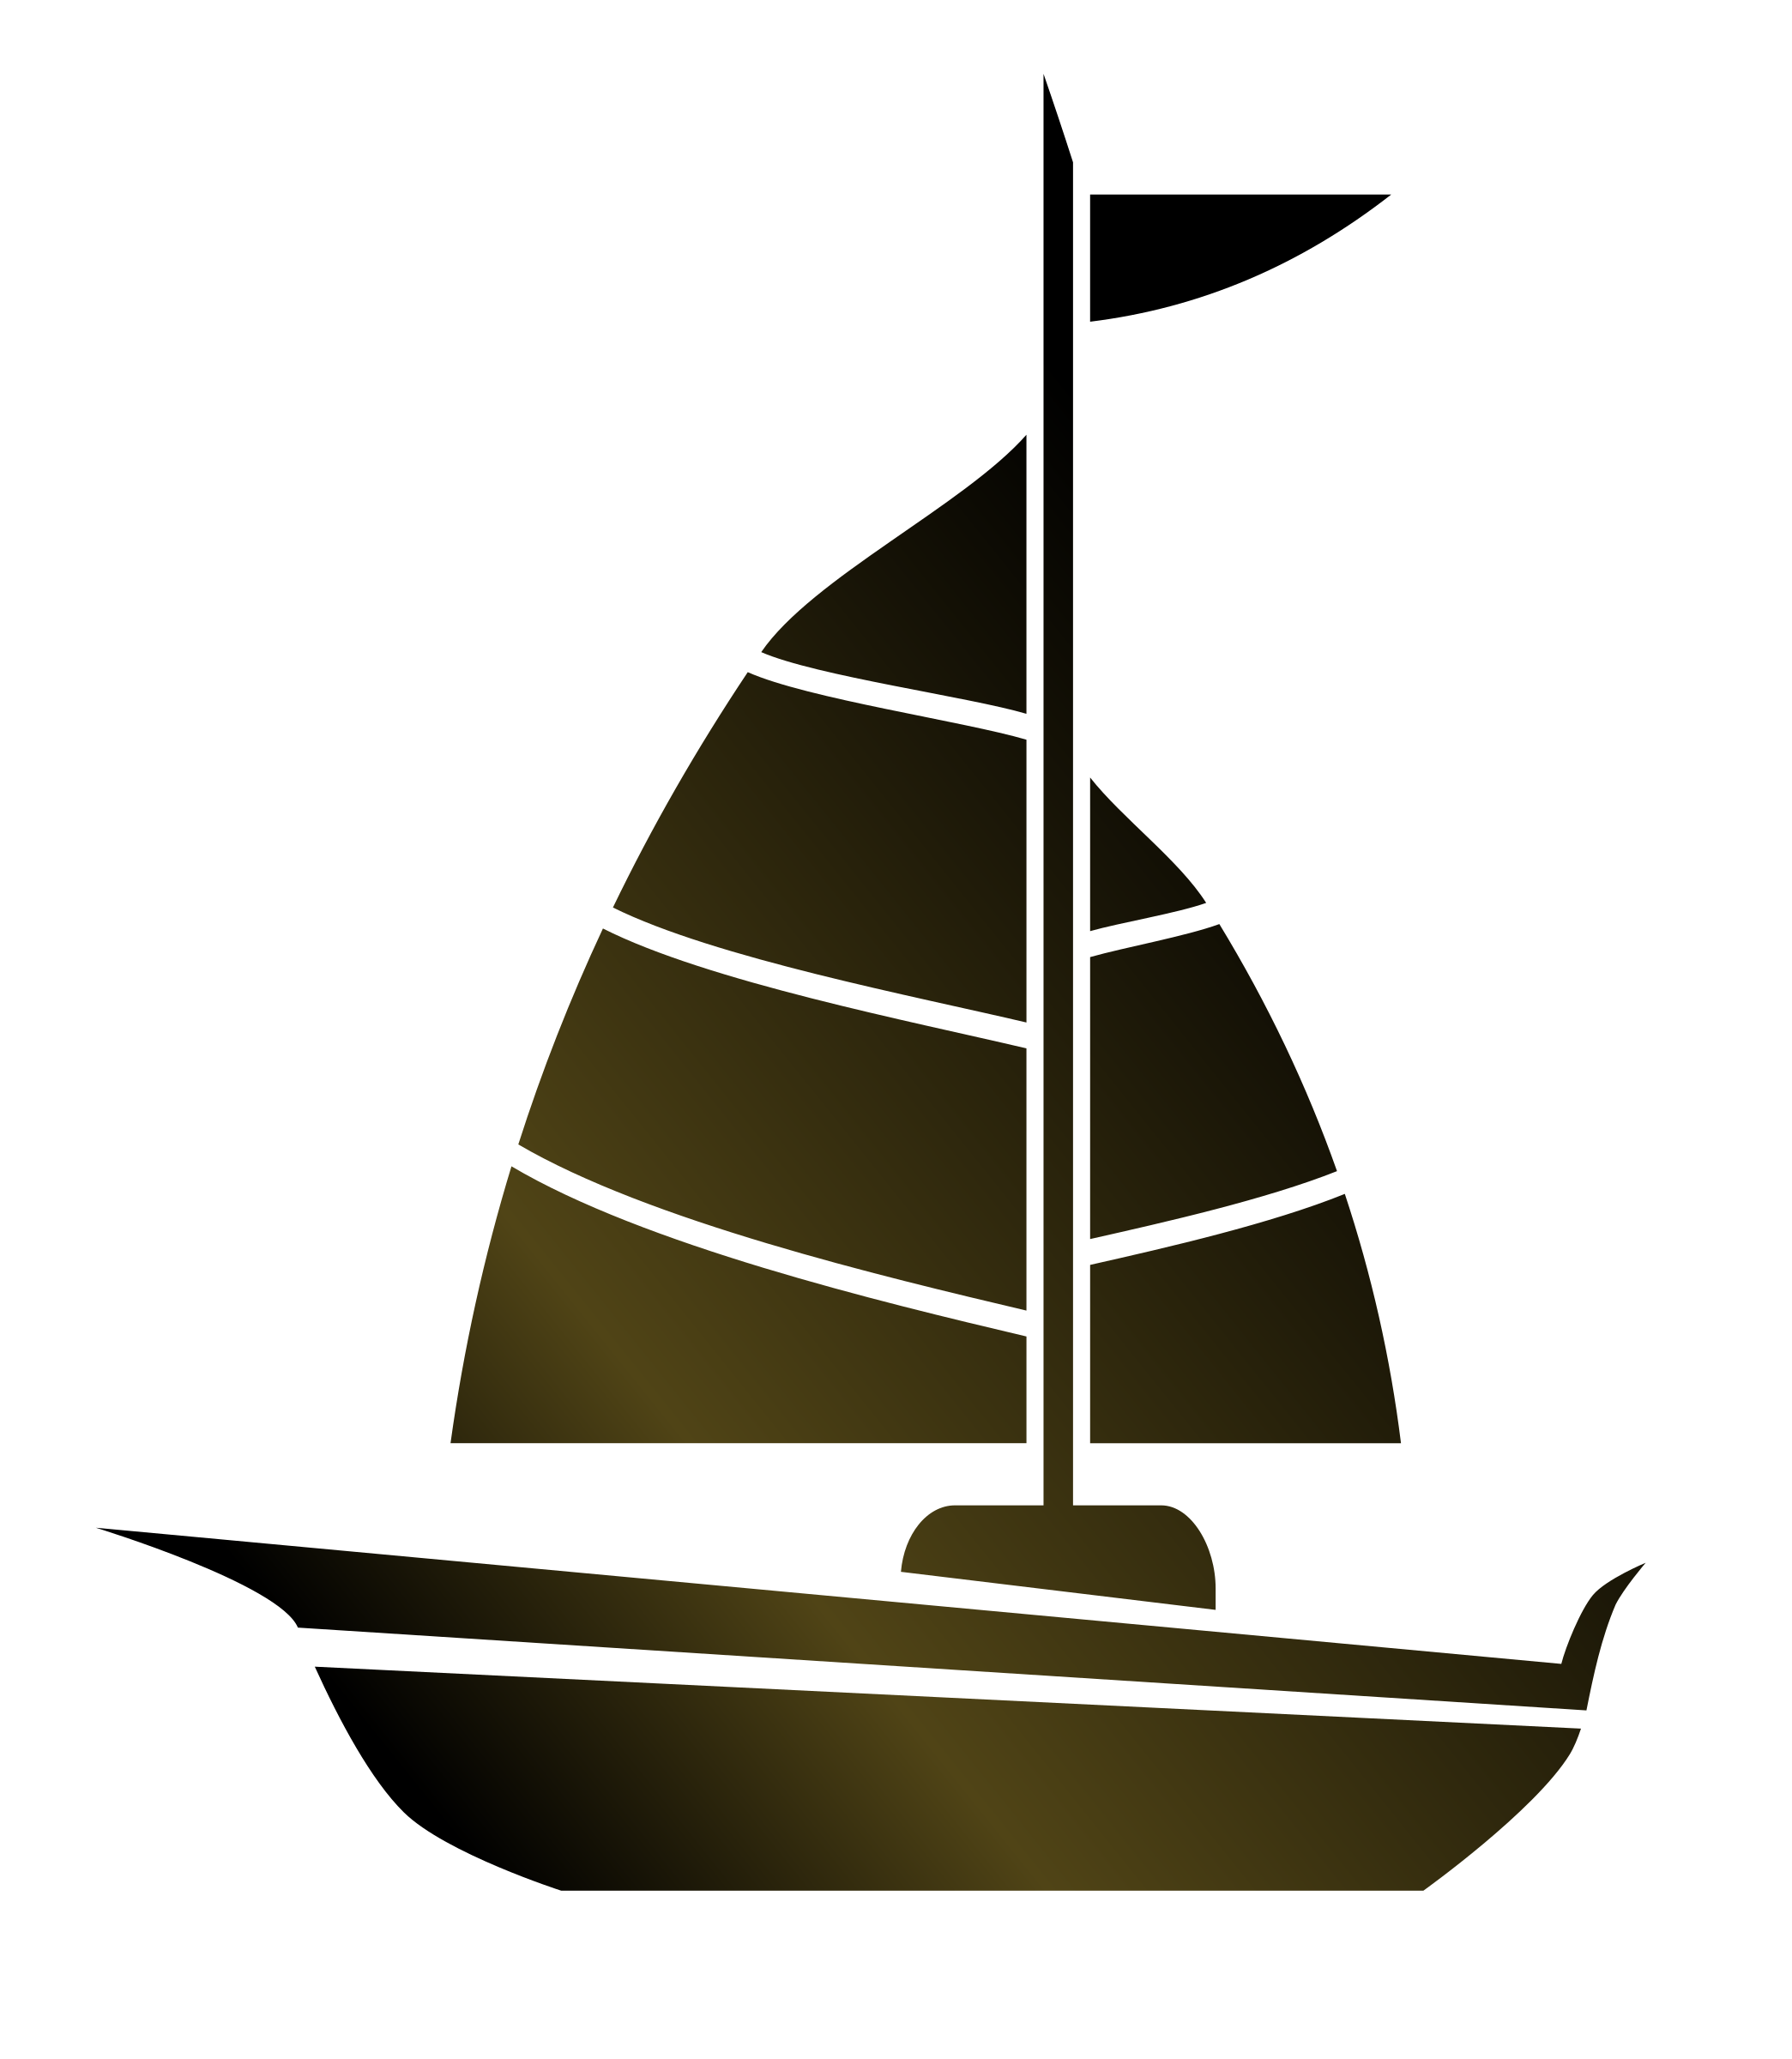 Clipart boat simple. Sailboat big image png